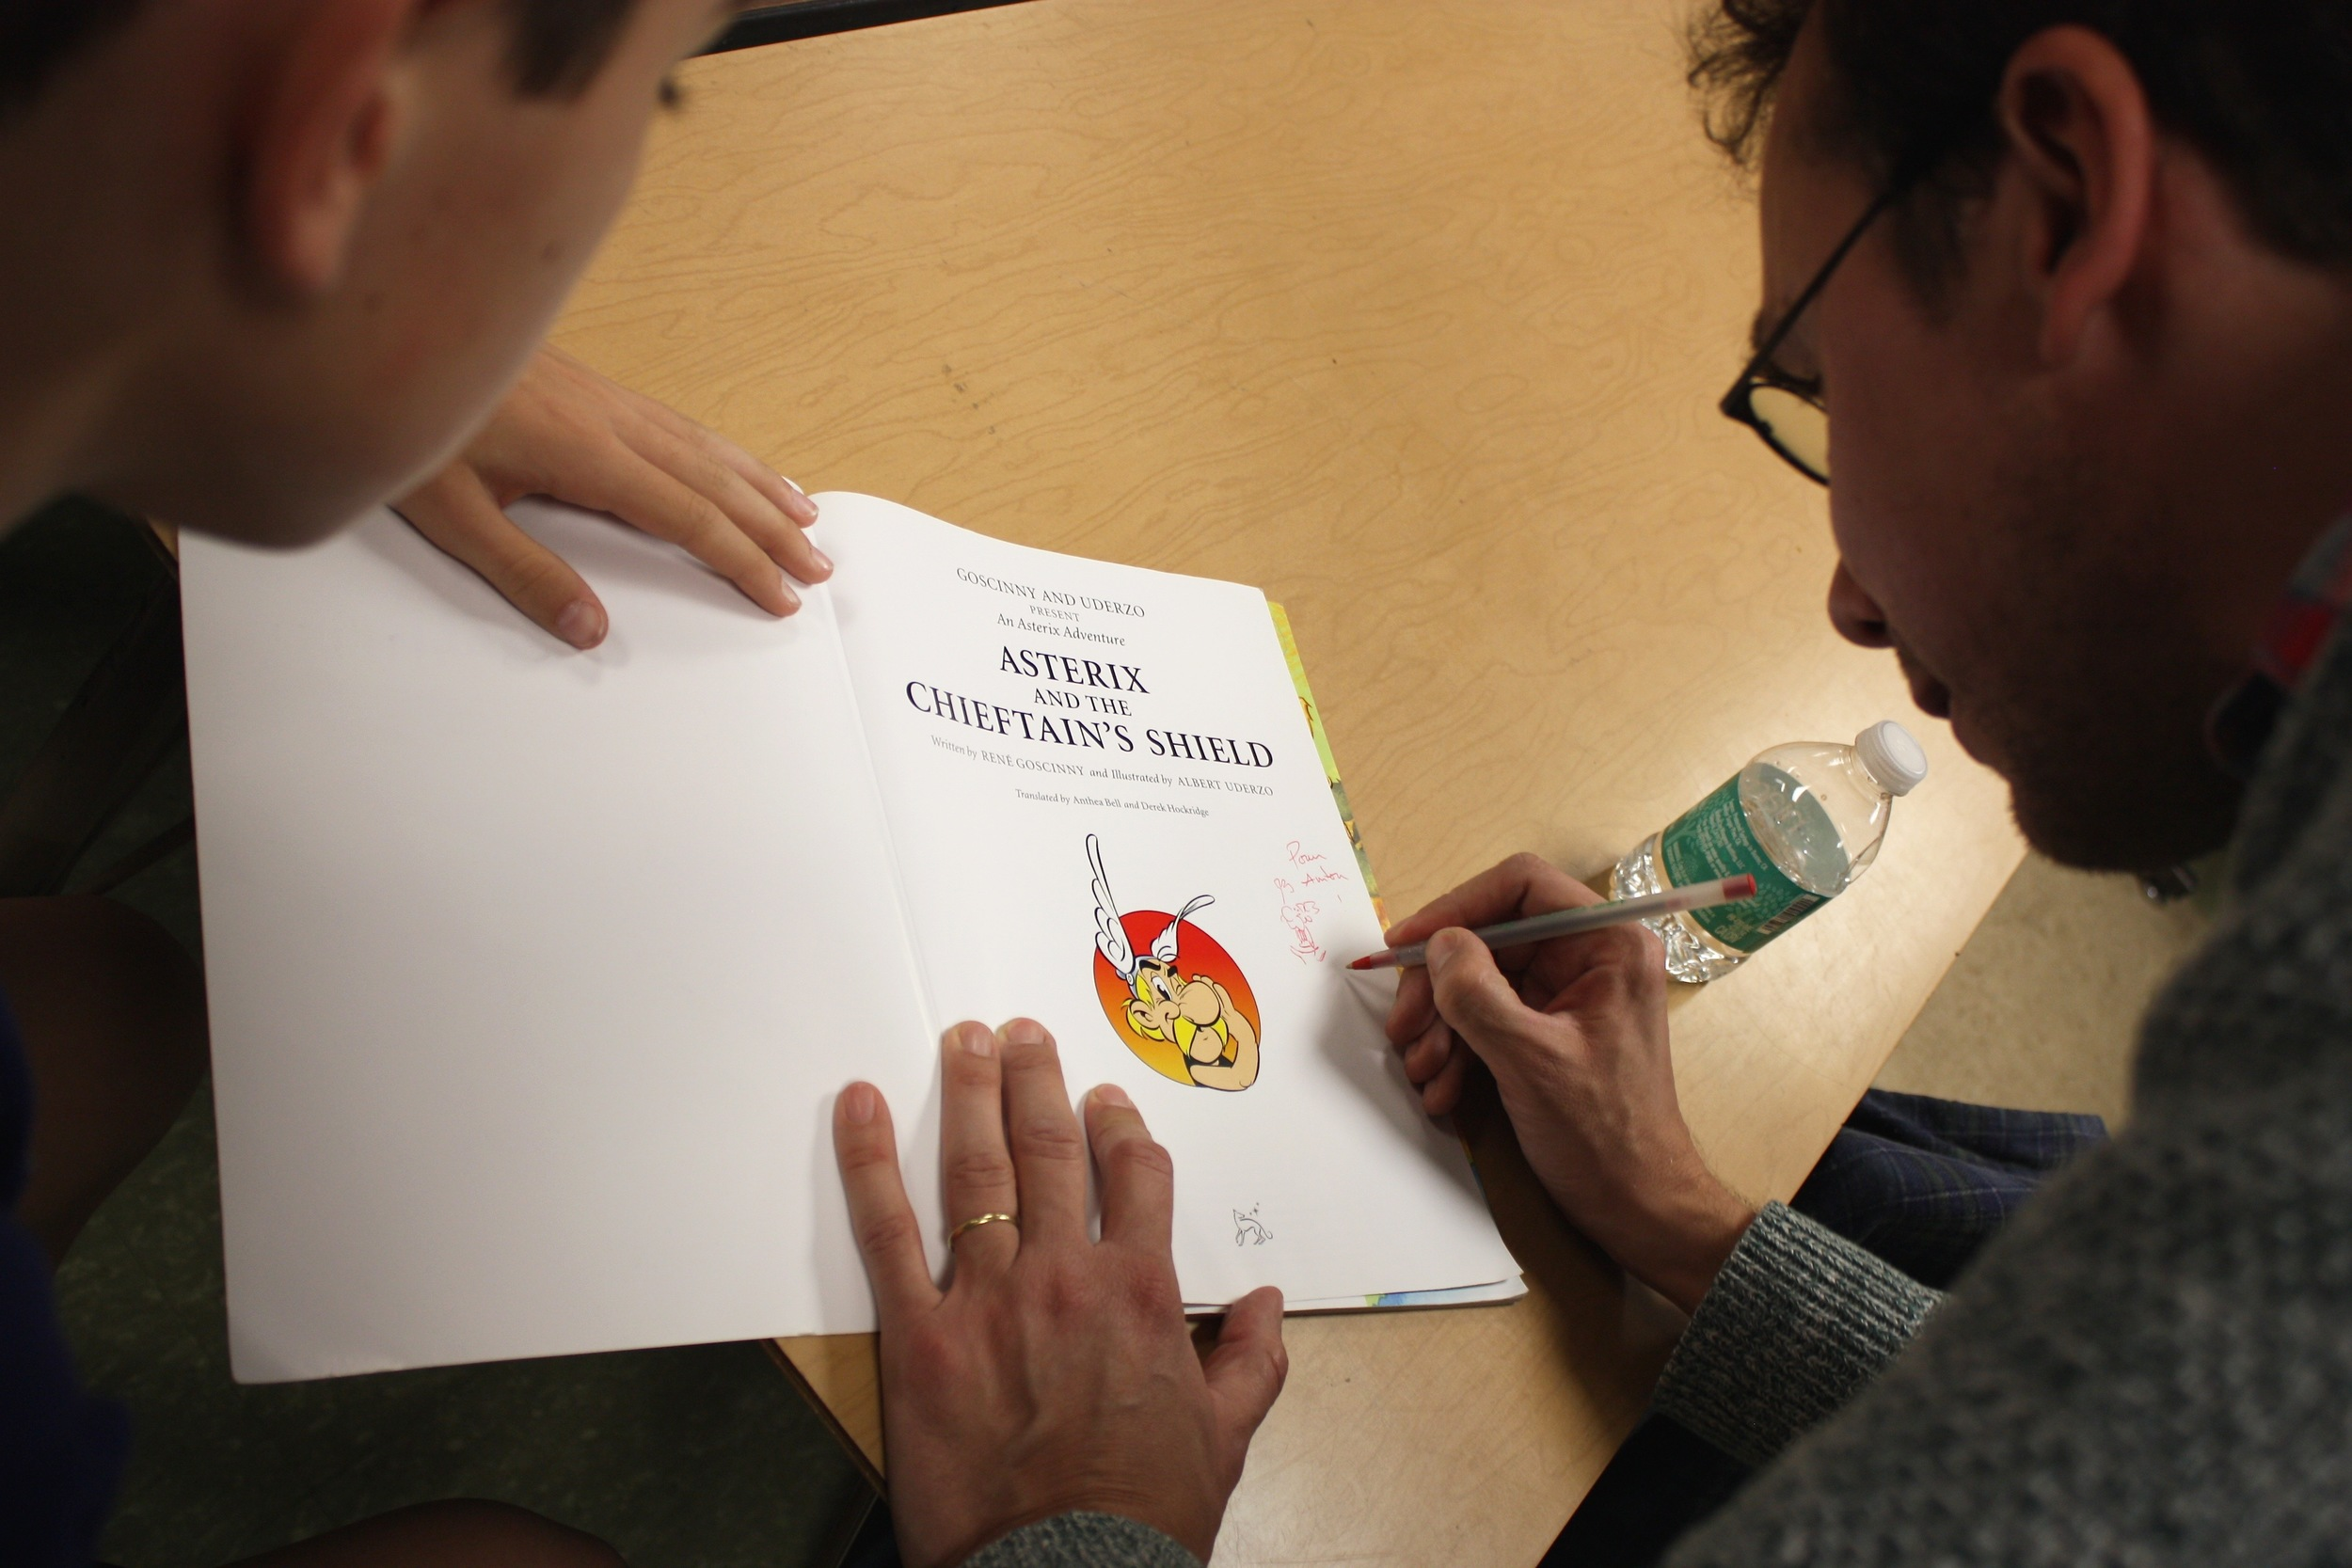 Louis signing a copy of the graphic novel Asterix for a student